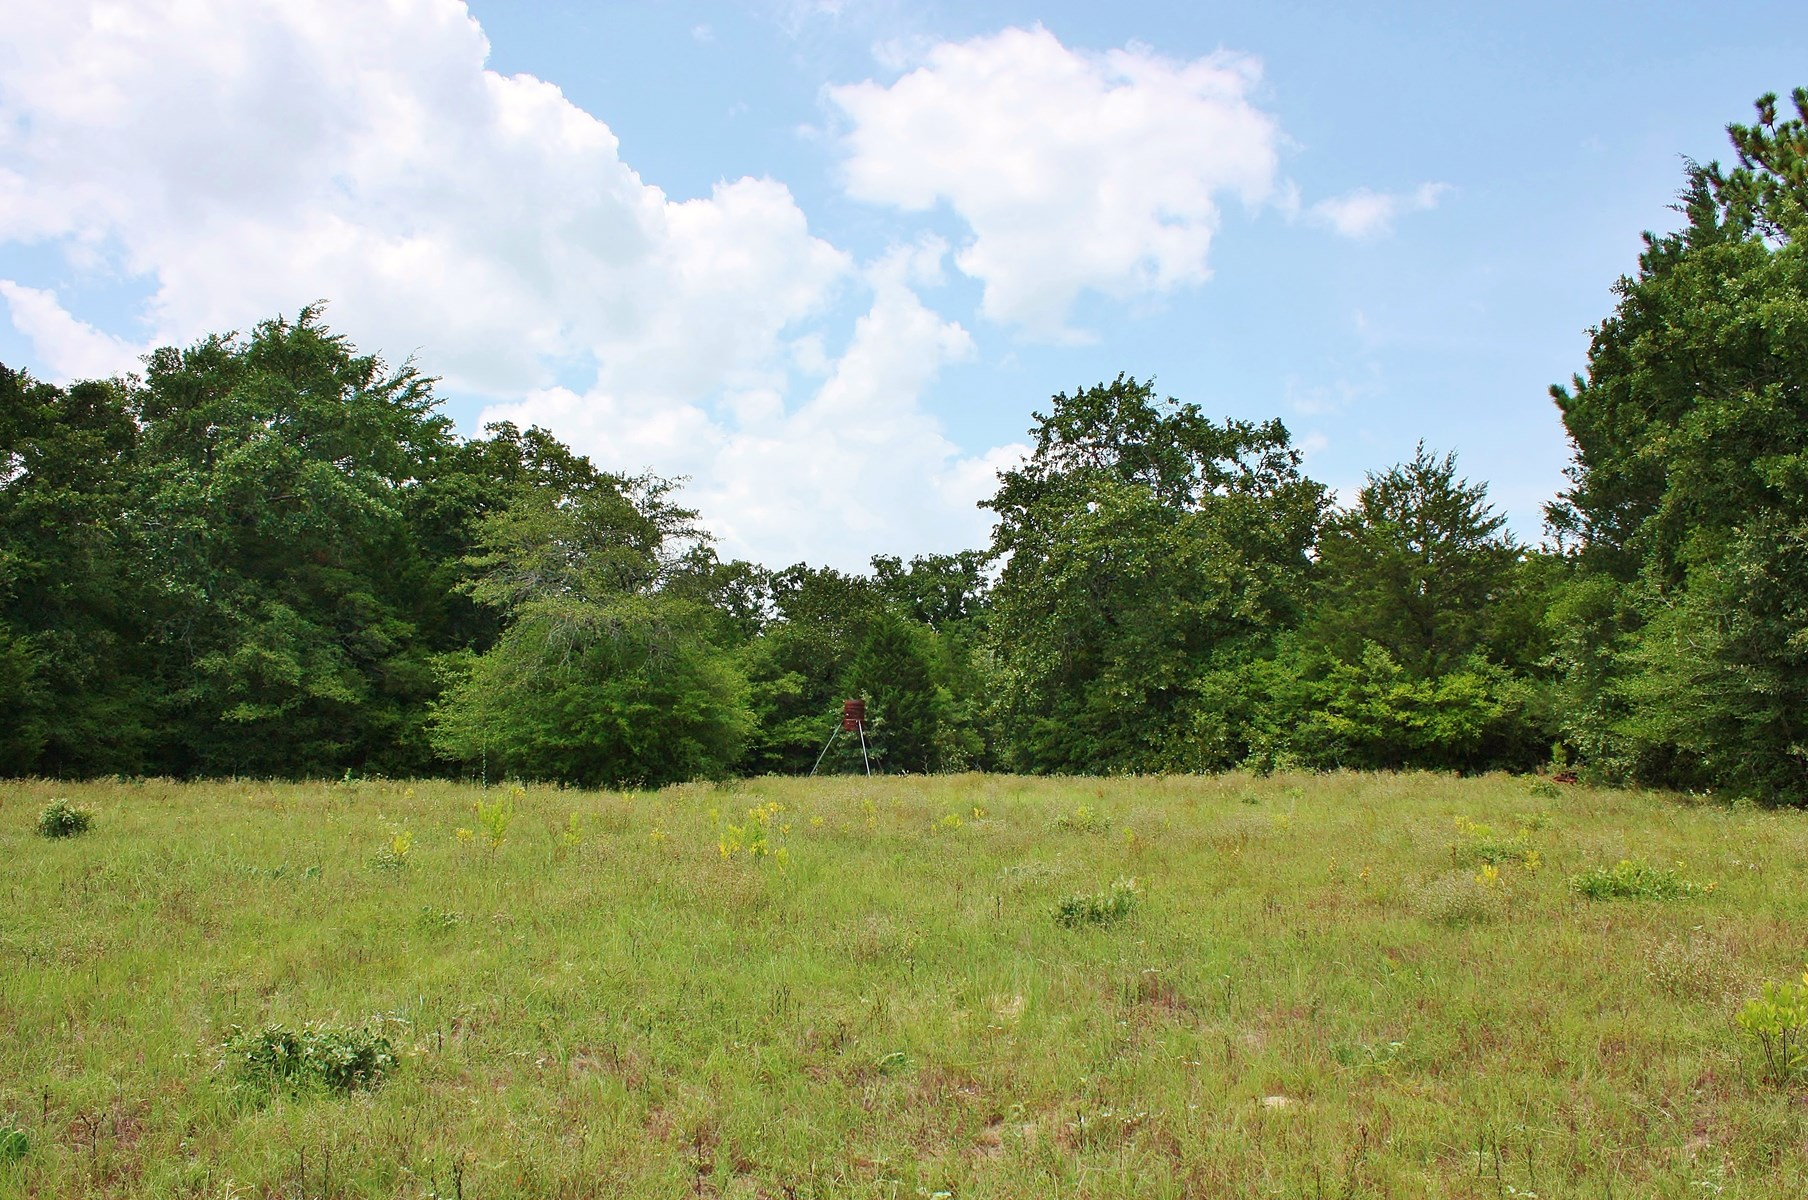 Hunting/Recreational Land For Sale in Leon County, Texas